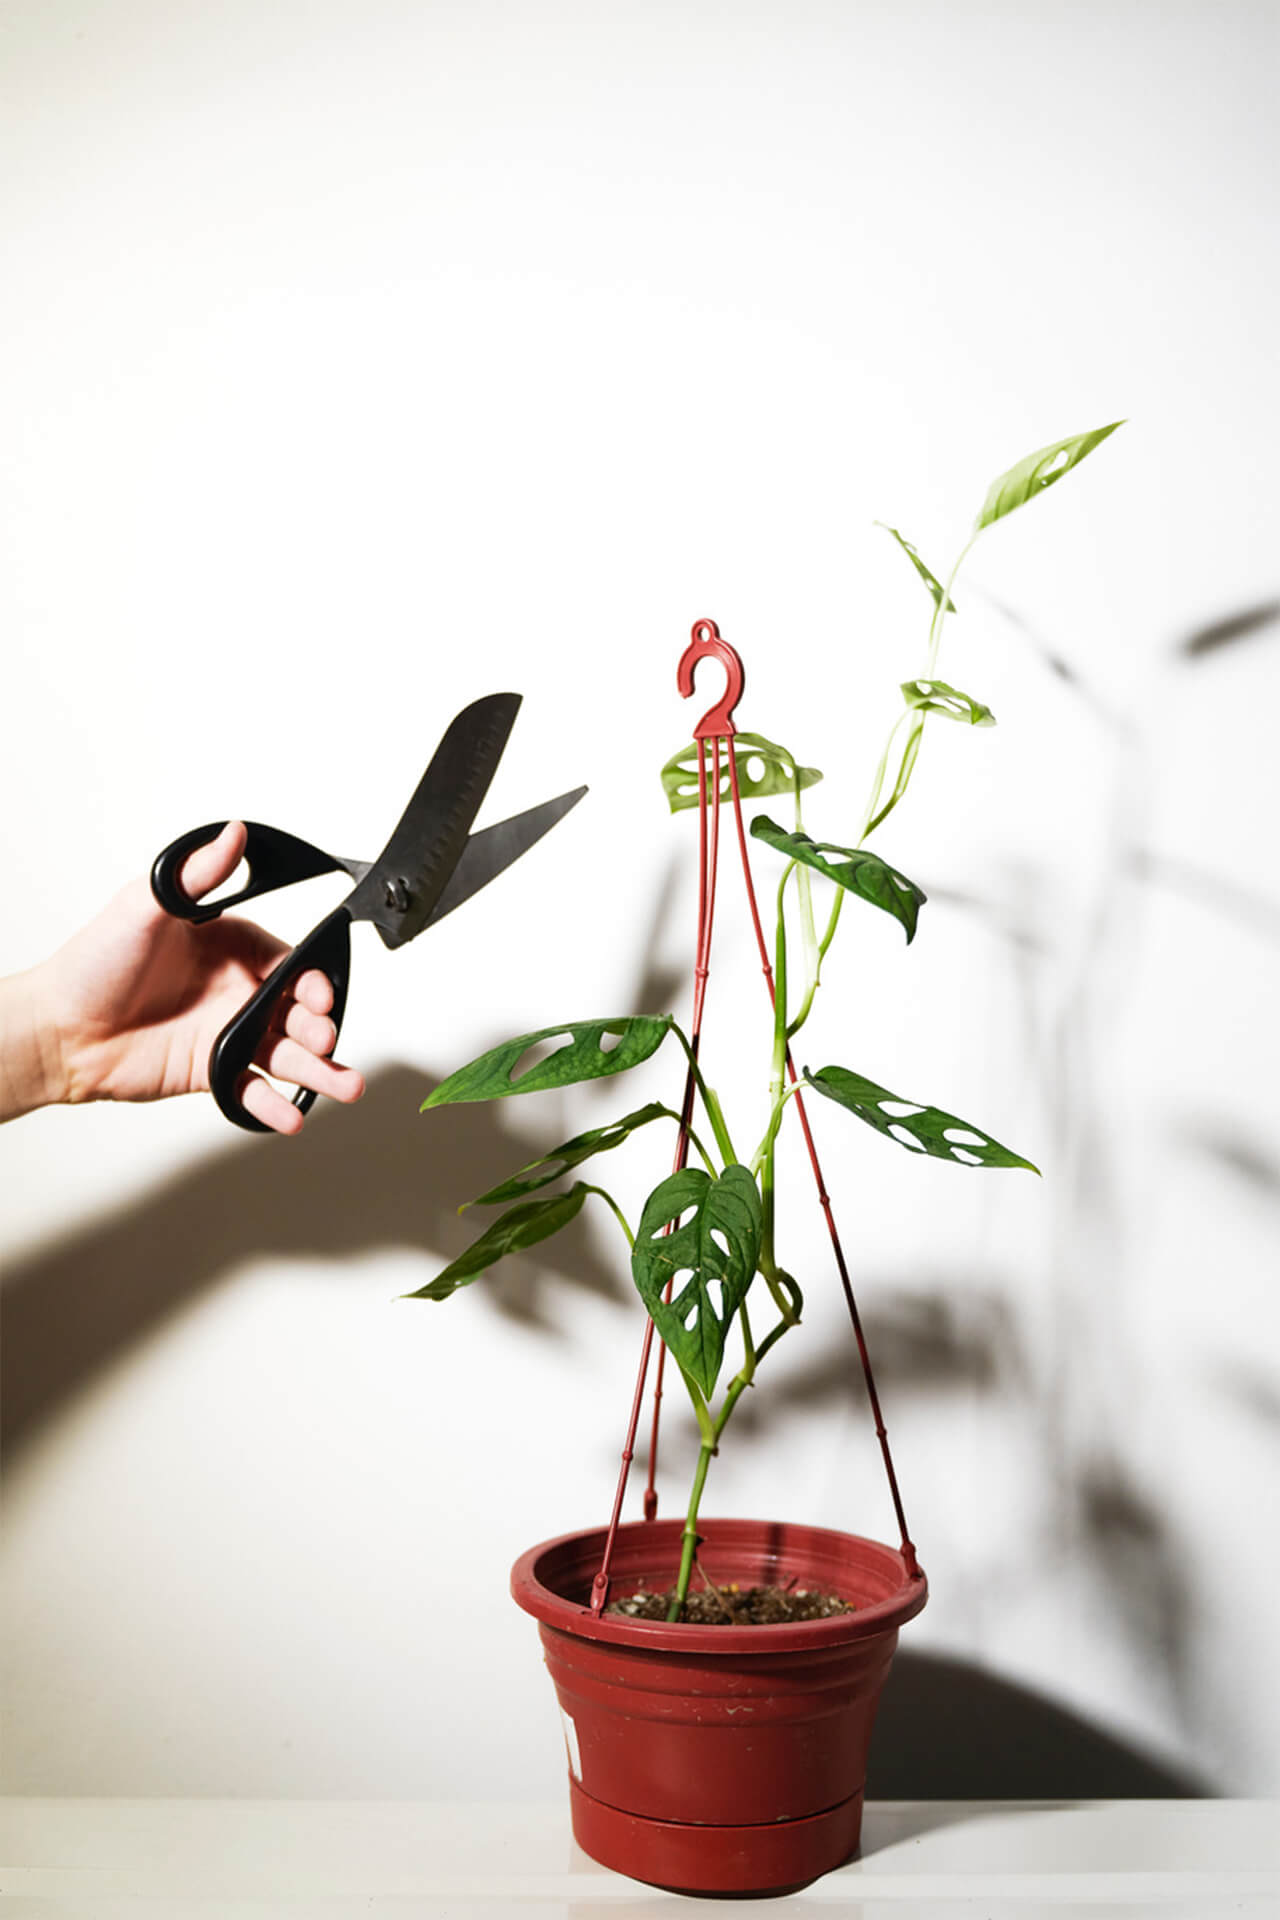 Pruning creates room for new growth, and at the same time, helps maintain the natural shape of your plants.